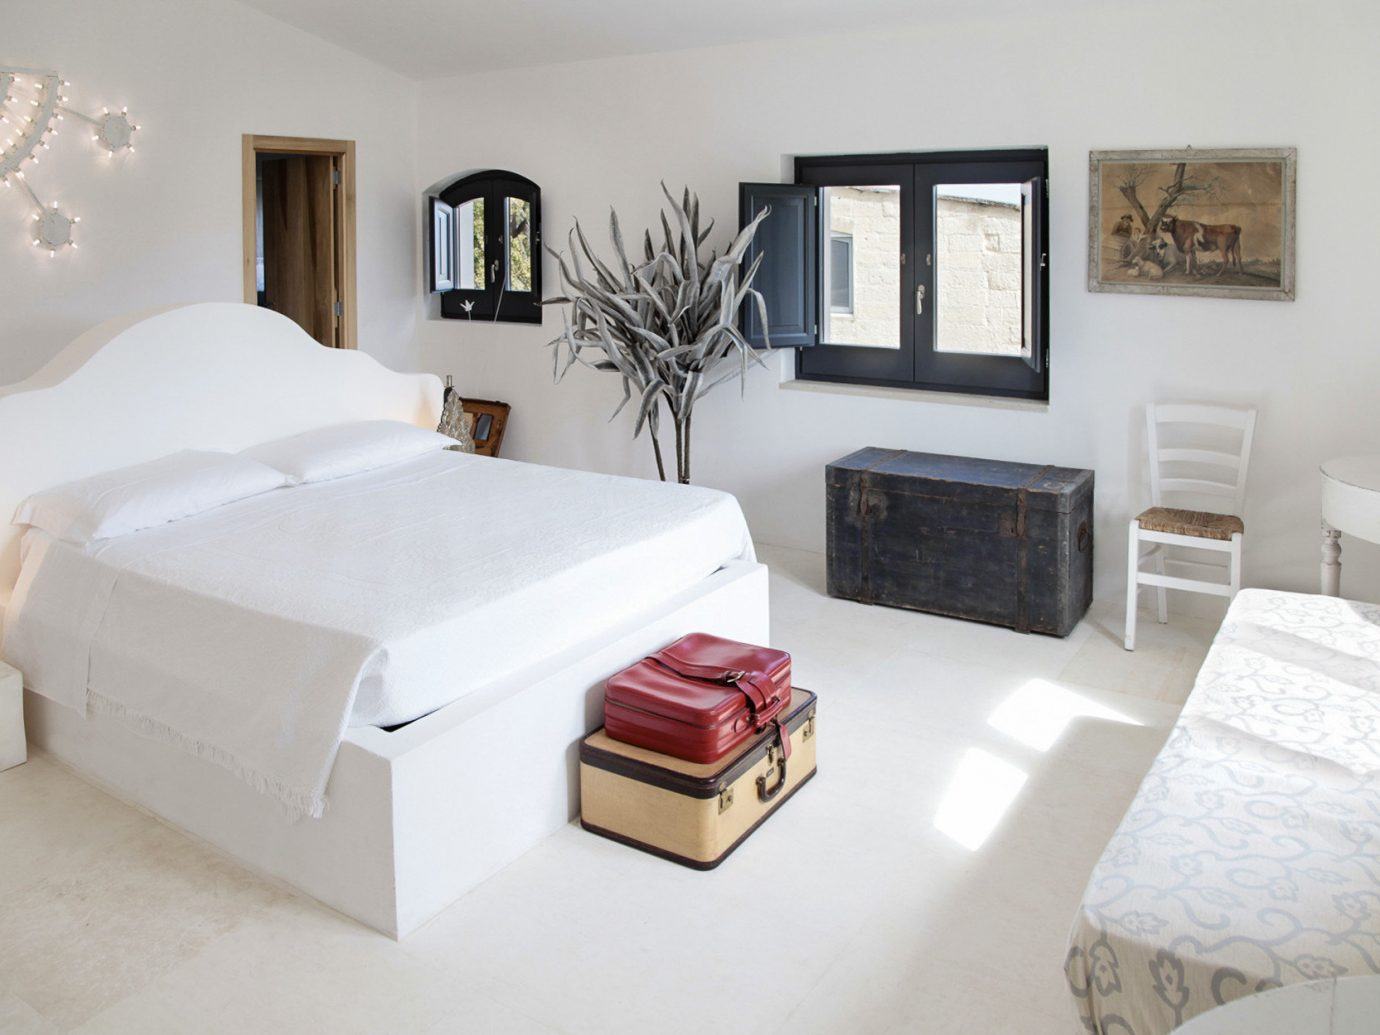 Boutique Hotels Hotels Trip Ideas wall indoor sofa floor bed frame room Bedroom property Living furniture bed home white interior design mattress bed sheet Suite living room decorated